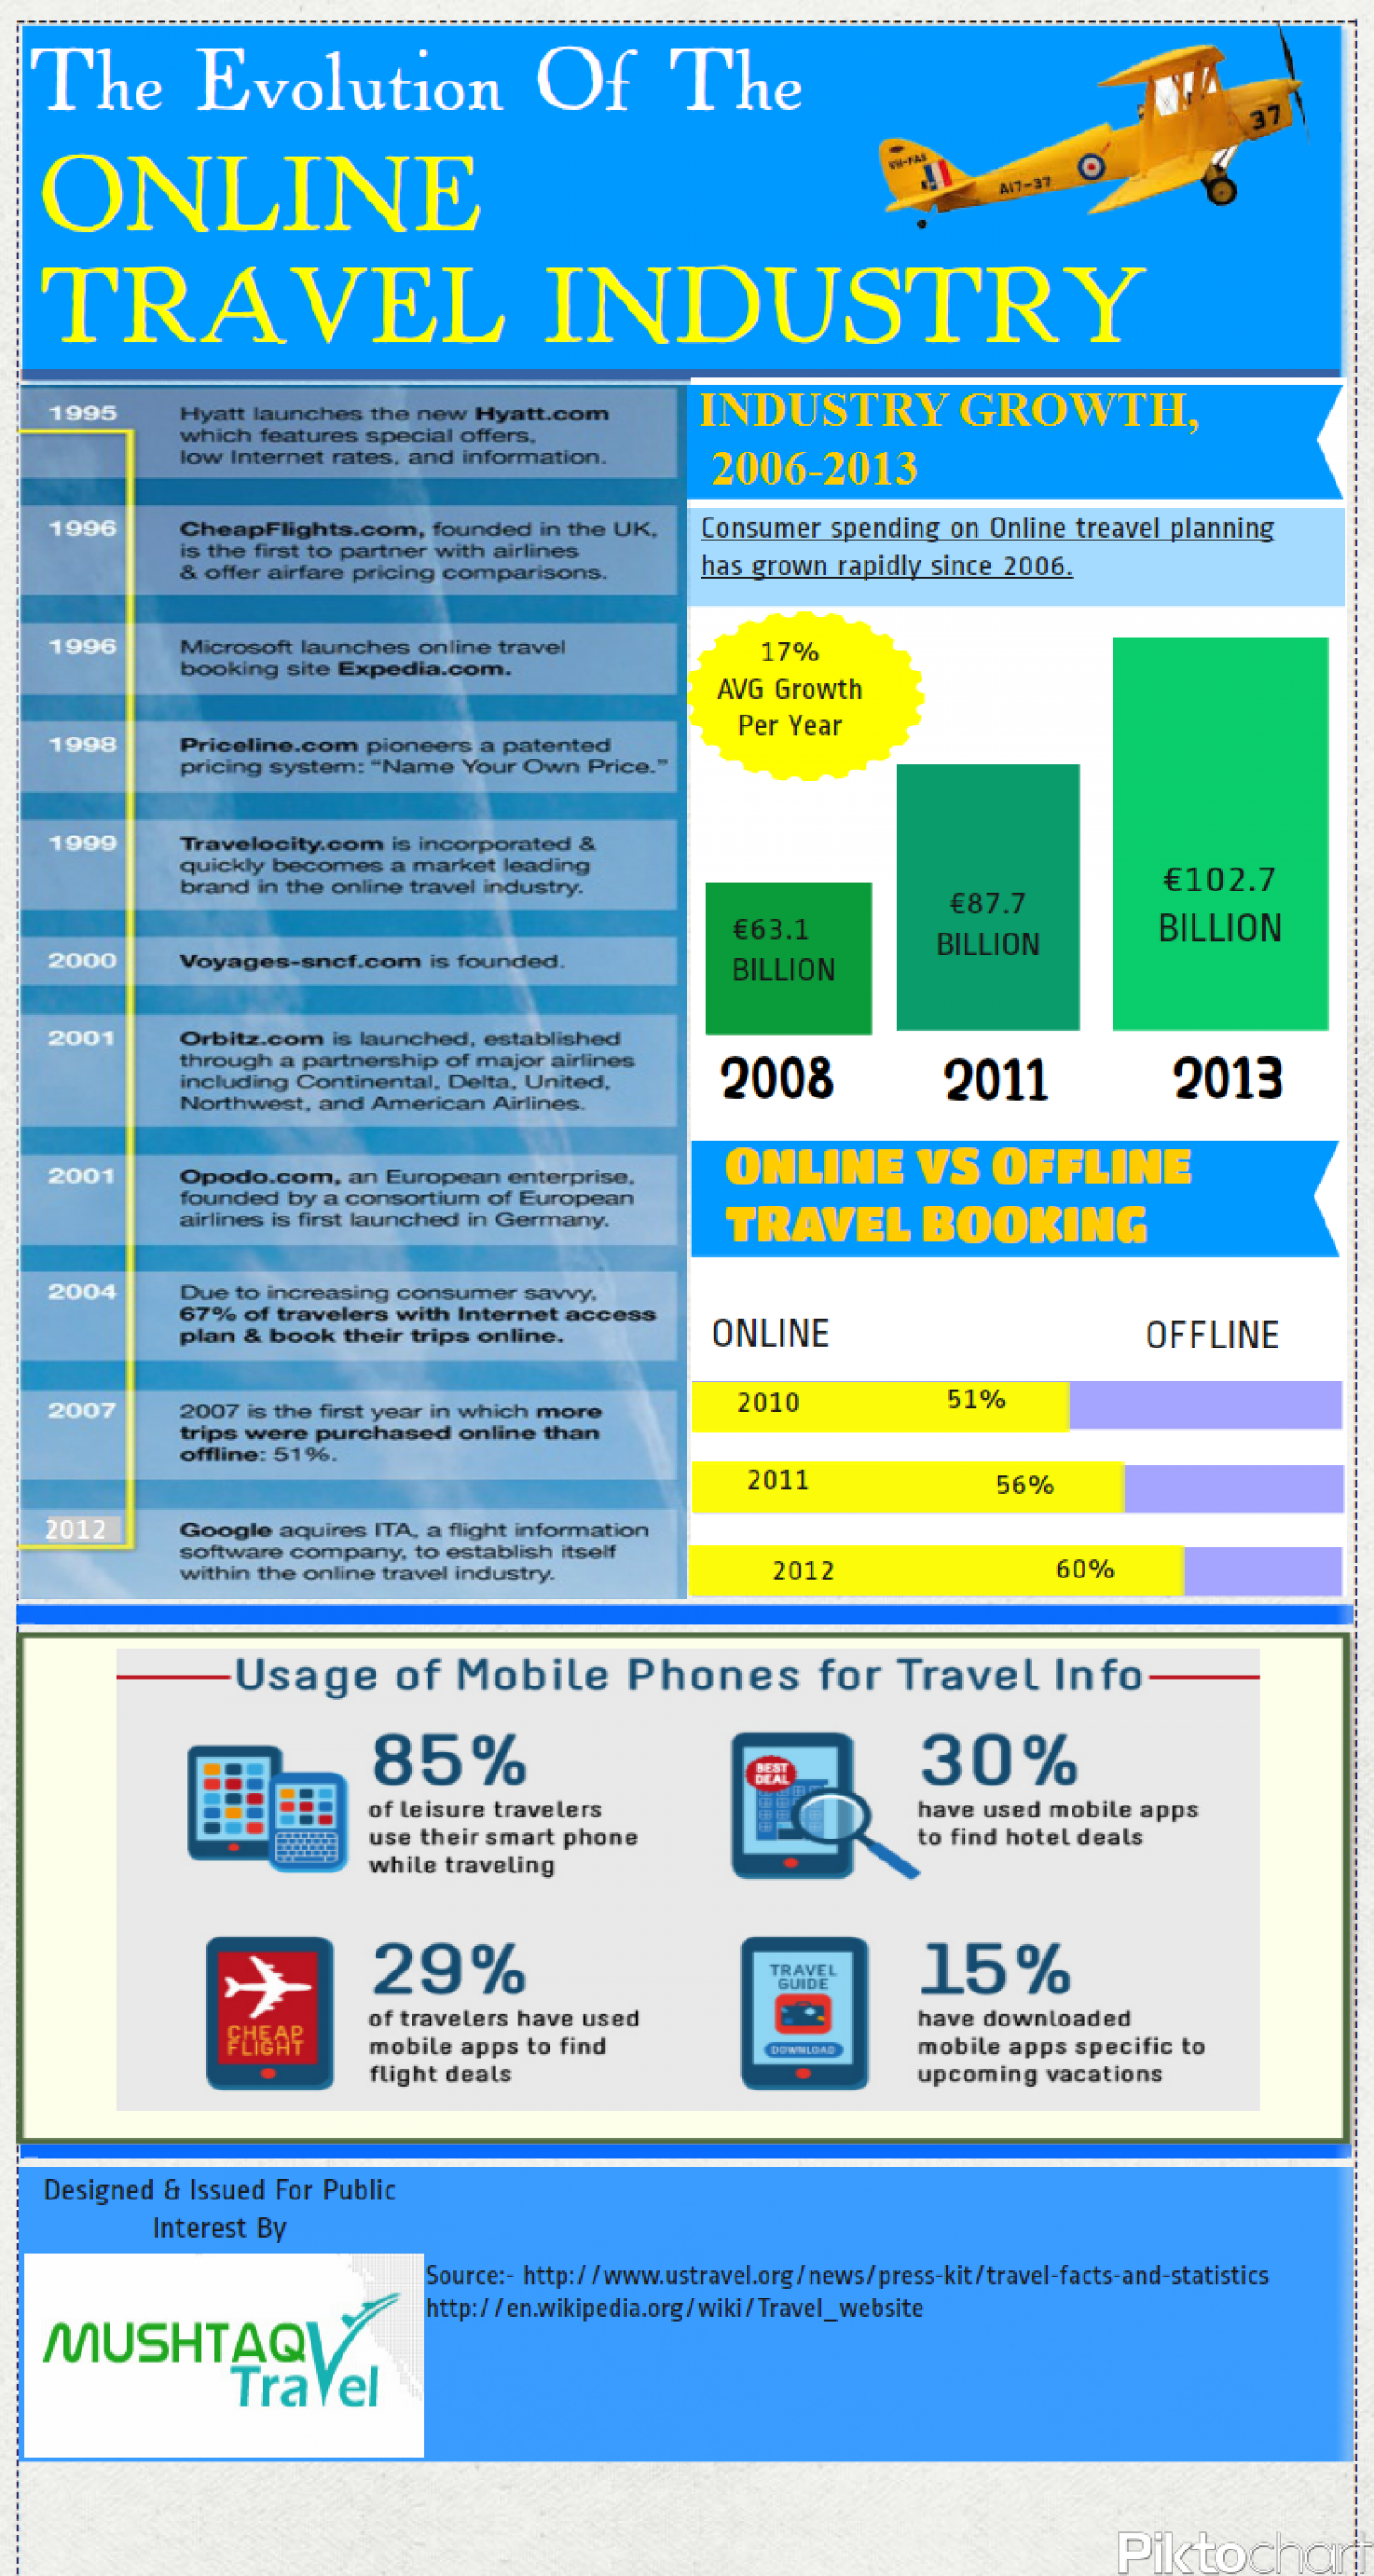 The Evolution Of The online travel industry Infographic